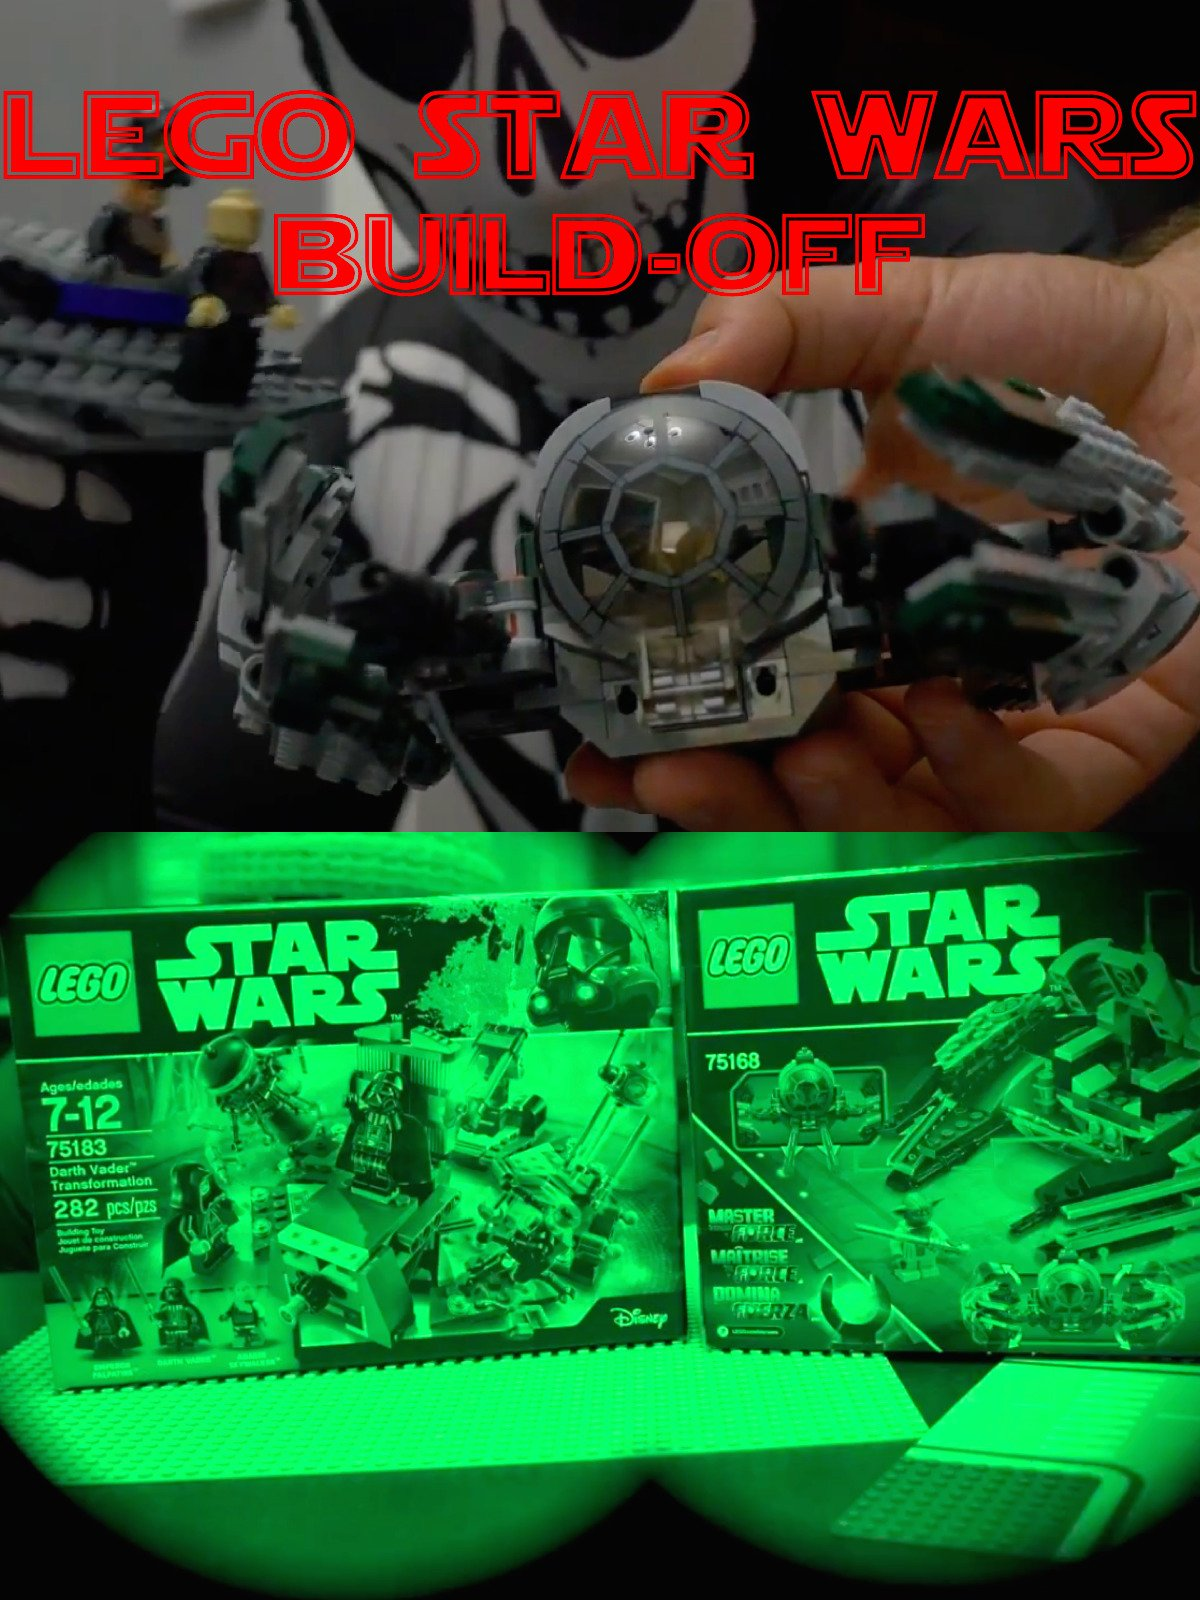 Clip: Lego Star Wars Build-Off